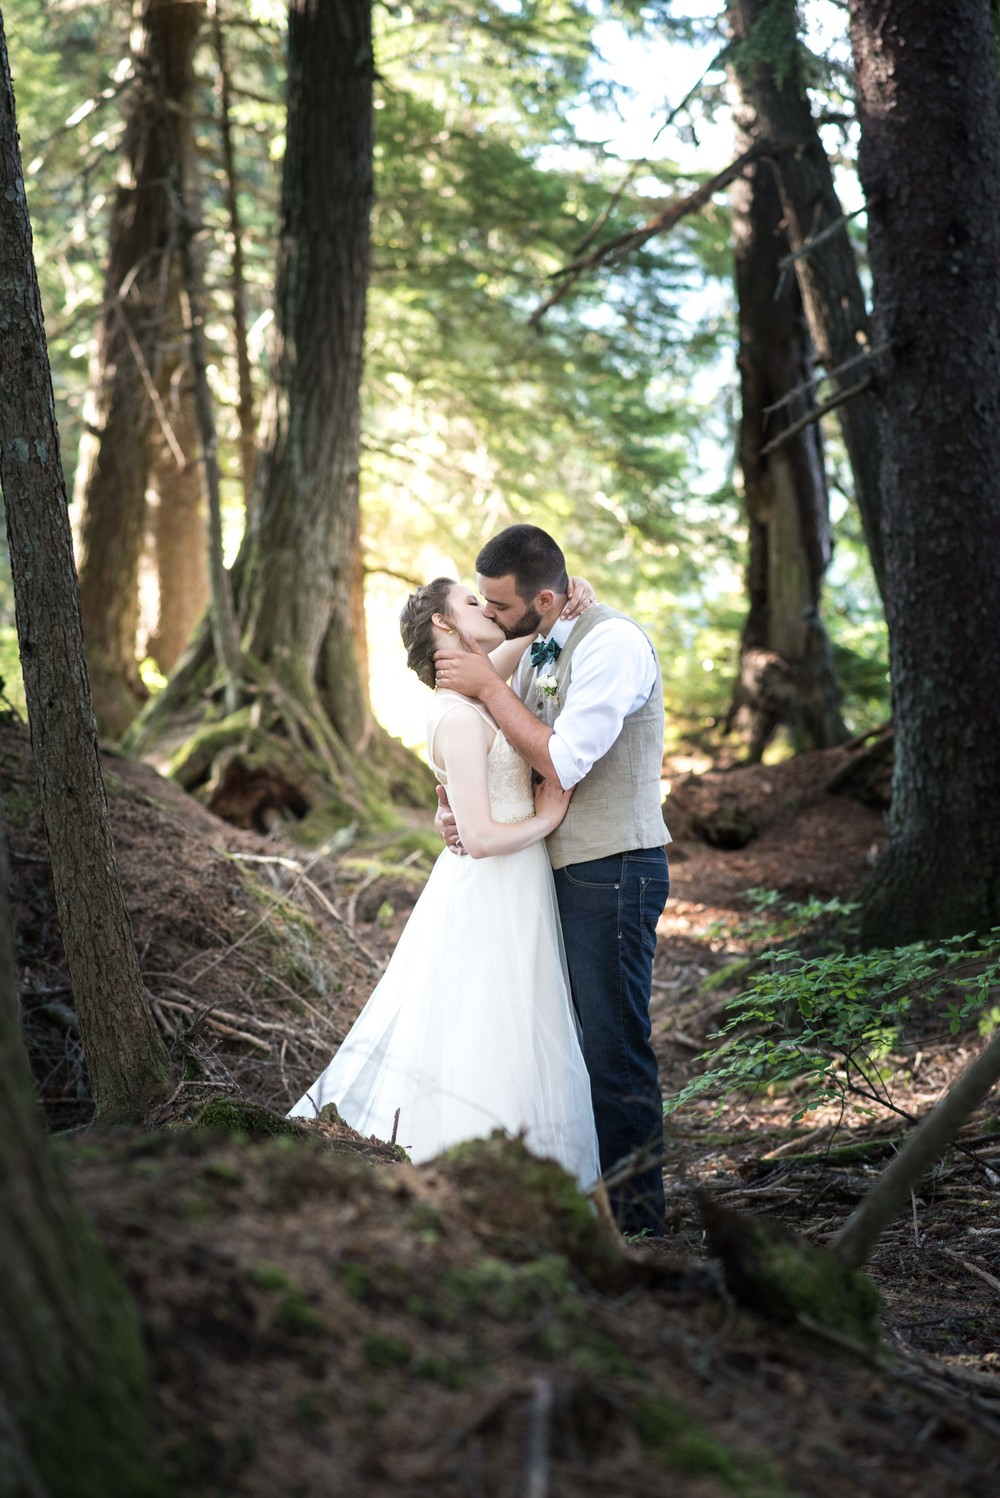 Brad Tombers Photography - Megan + Luke (50 of 74).jpg